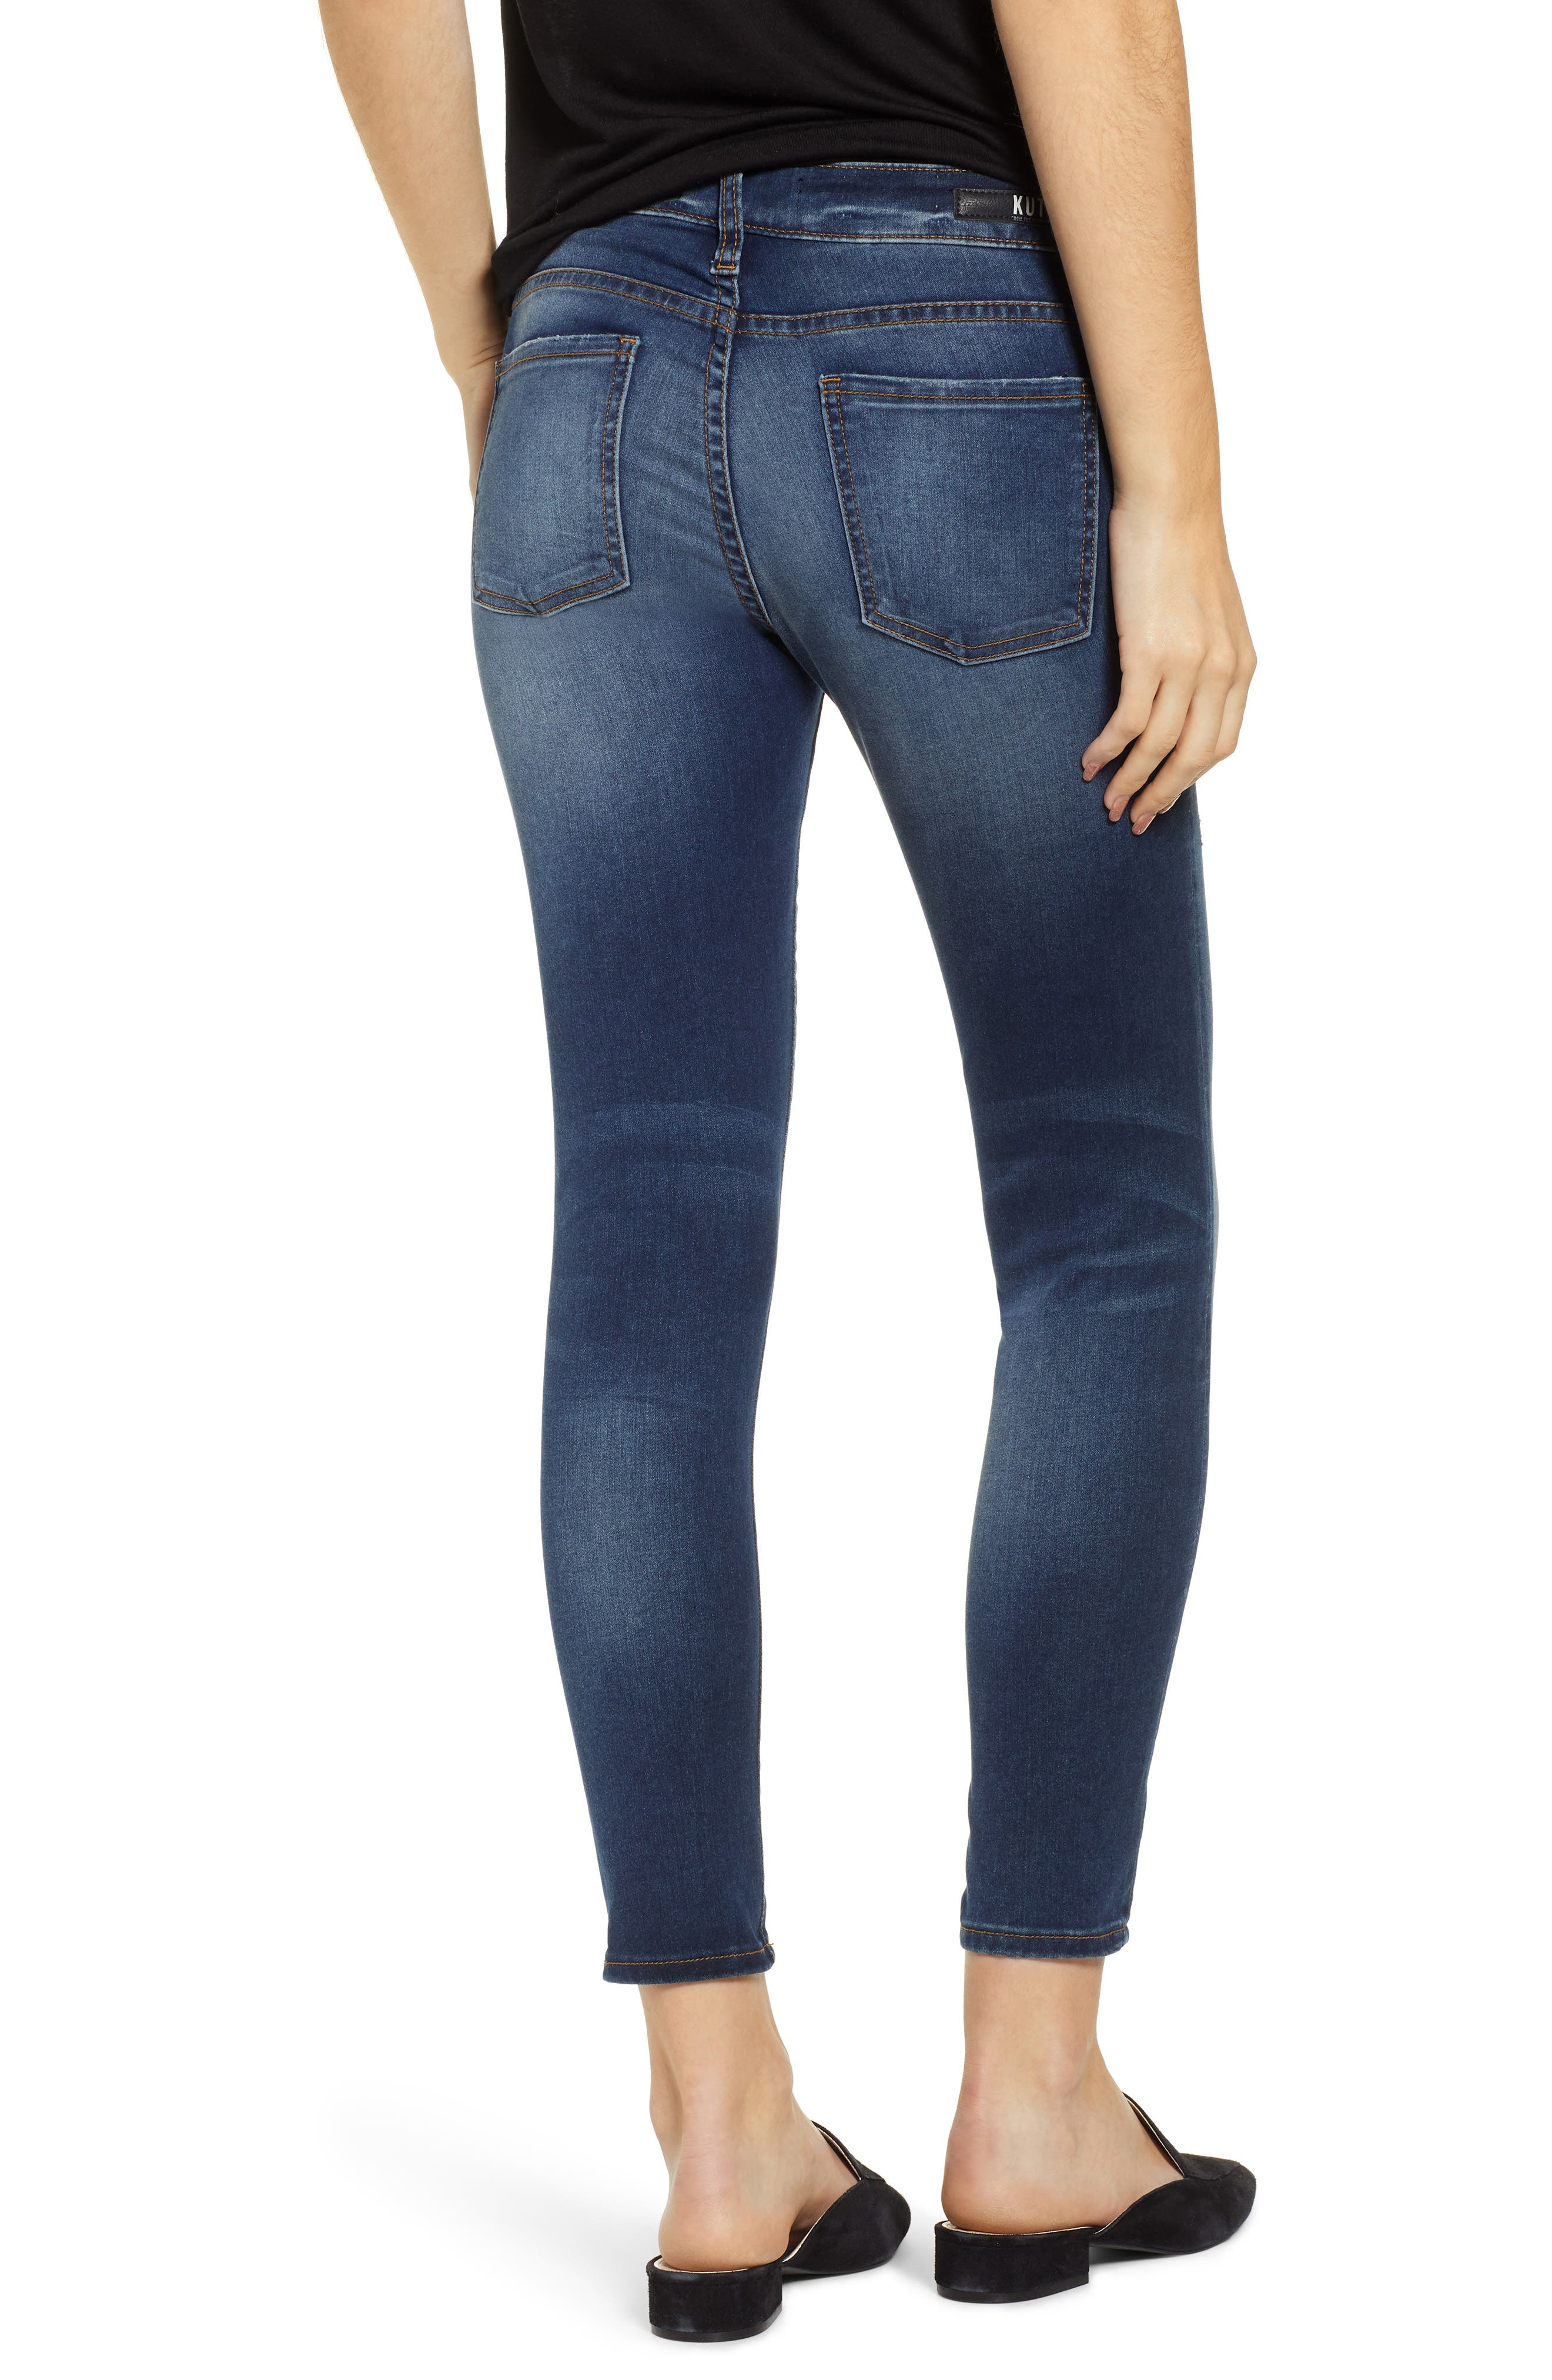 KUT FROM THE KLOTH, KUT From The Koth Donna Ankle Skinny Jeans, Alternate thumbnail 2, color, 400